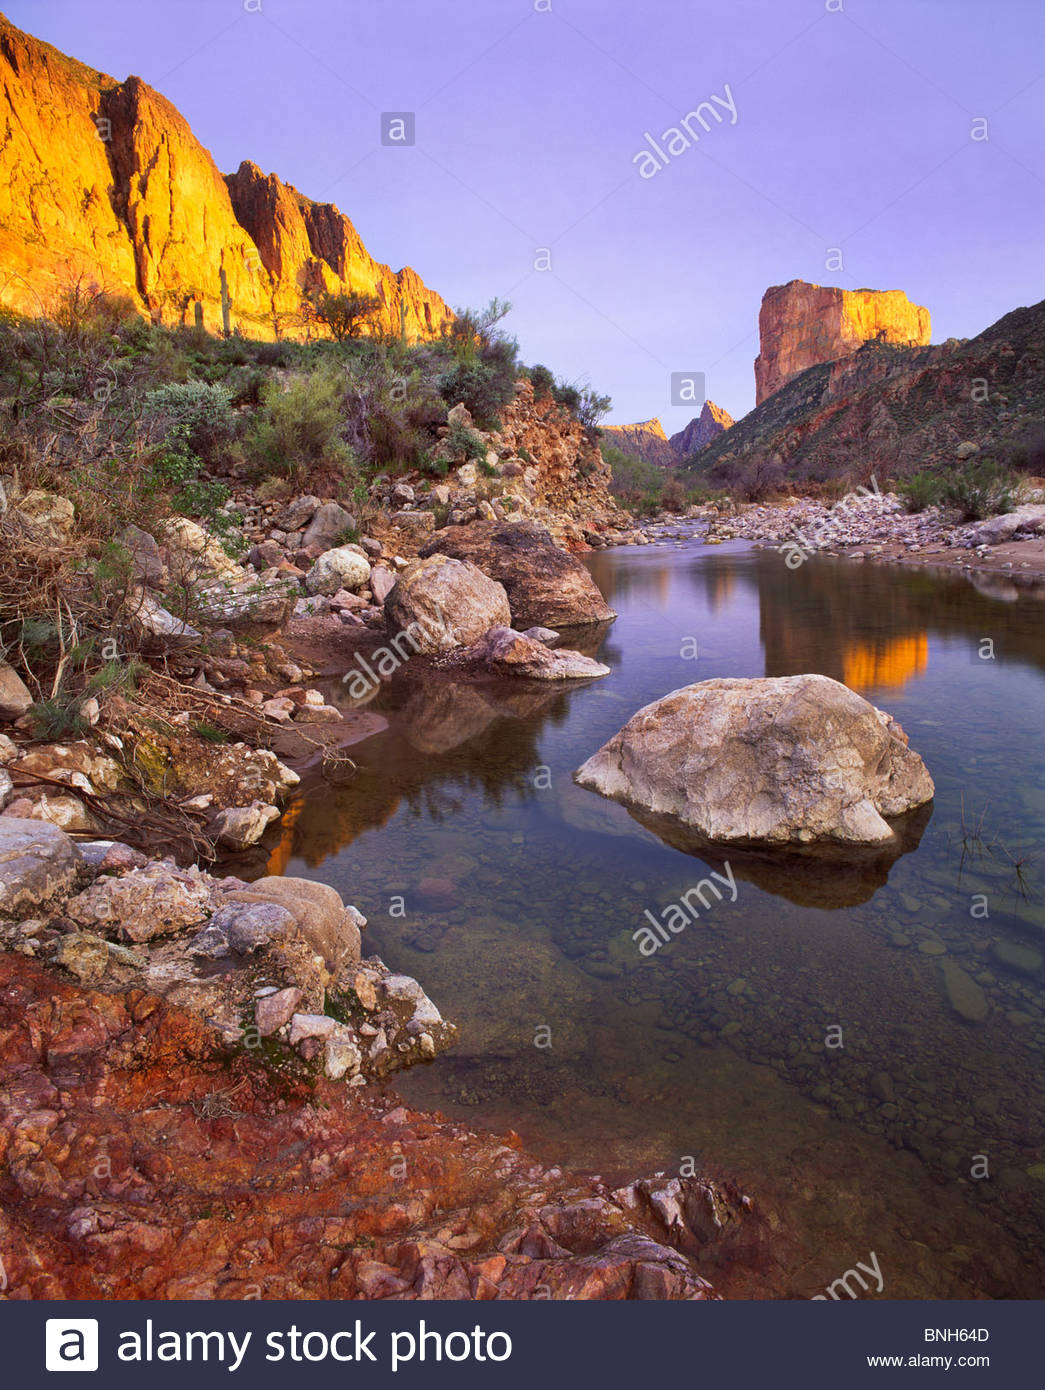 'Boulder Creek' and 'Battleship Mountain', [Superstition Wilderness Area] 'Tonto National Forest' - Stock Image